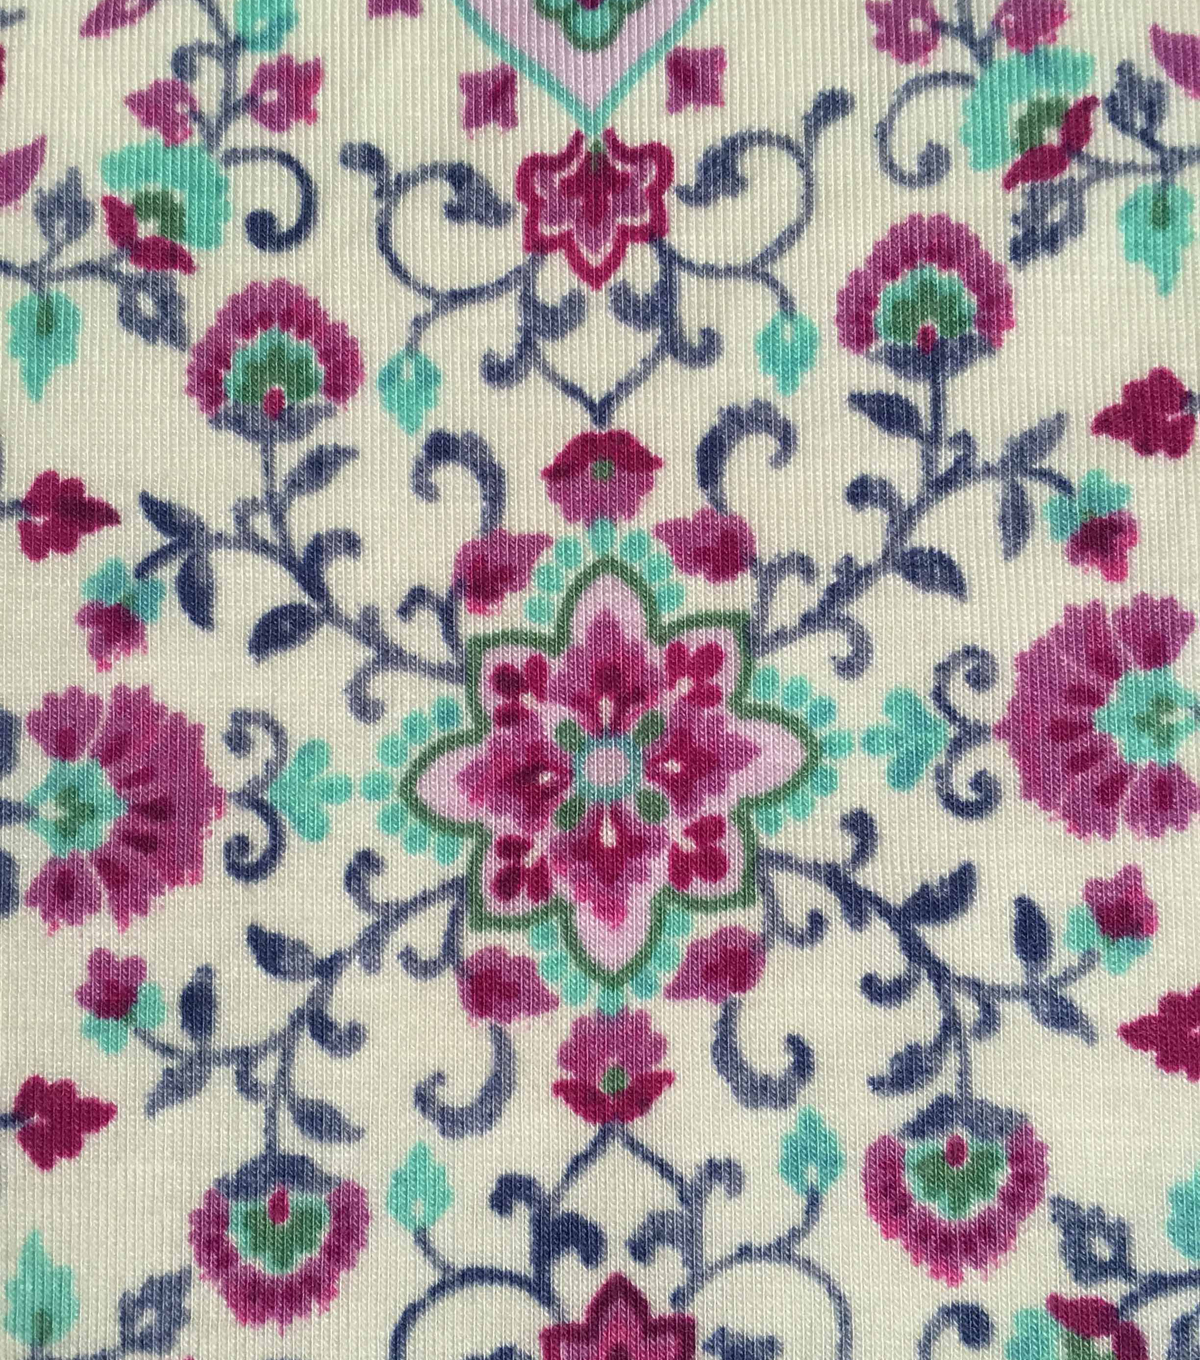 Knit Apparel Fabric-Vines Pink Mosaic on Ivory